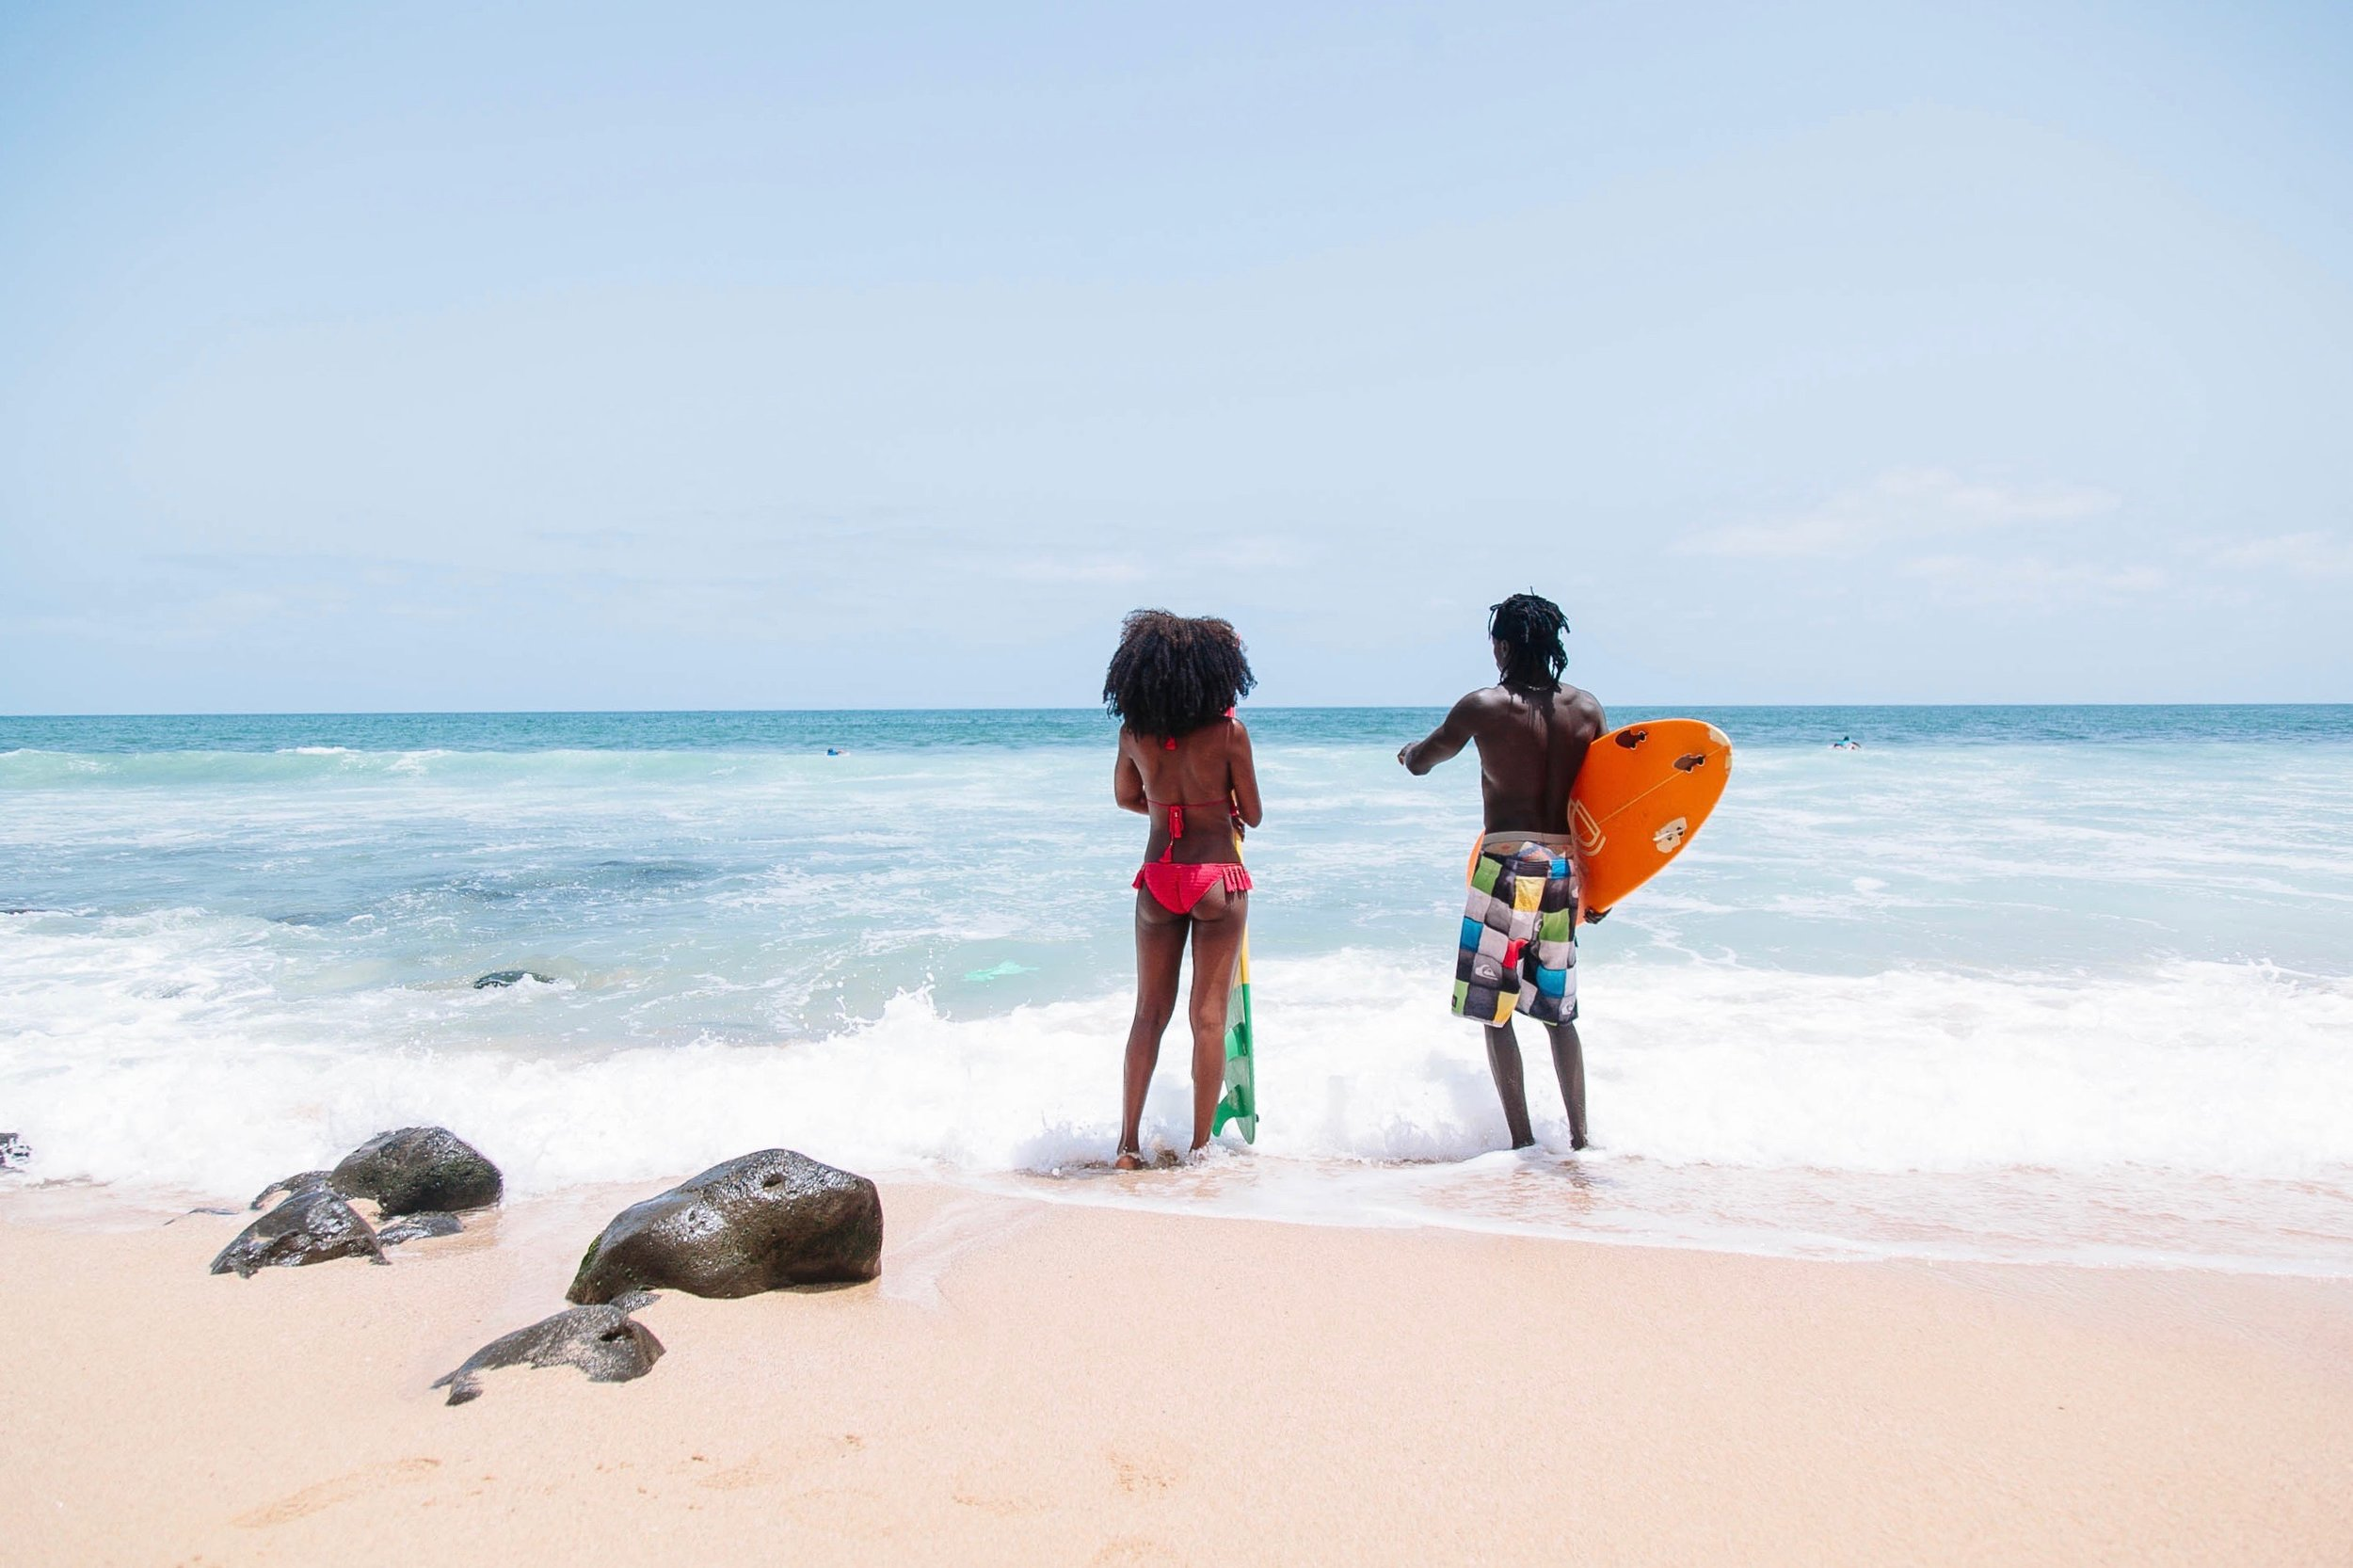 leelitumbe_spiritedpursuit_senegal_dakar_surf-71 2.jpg